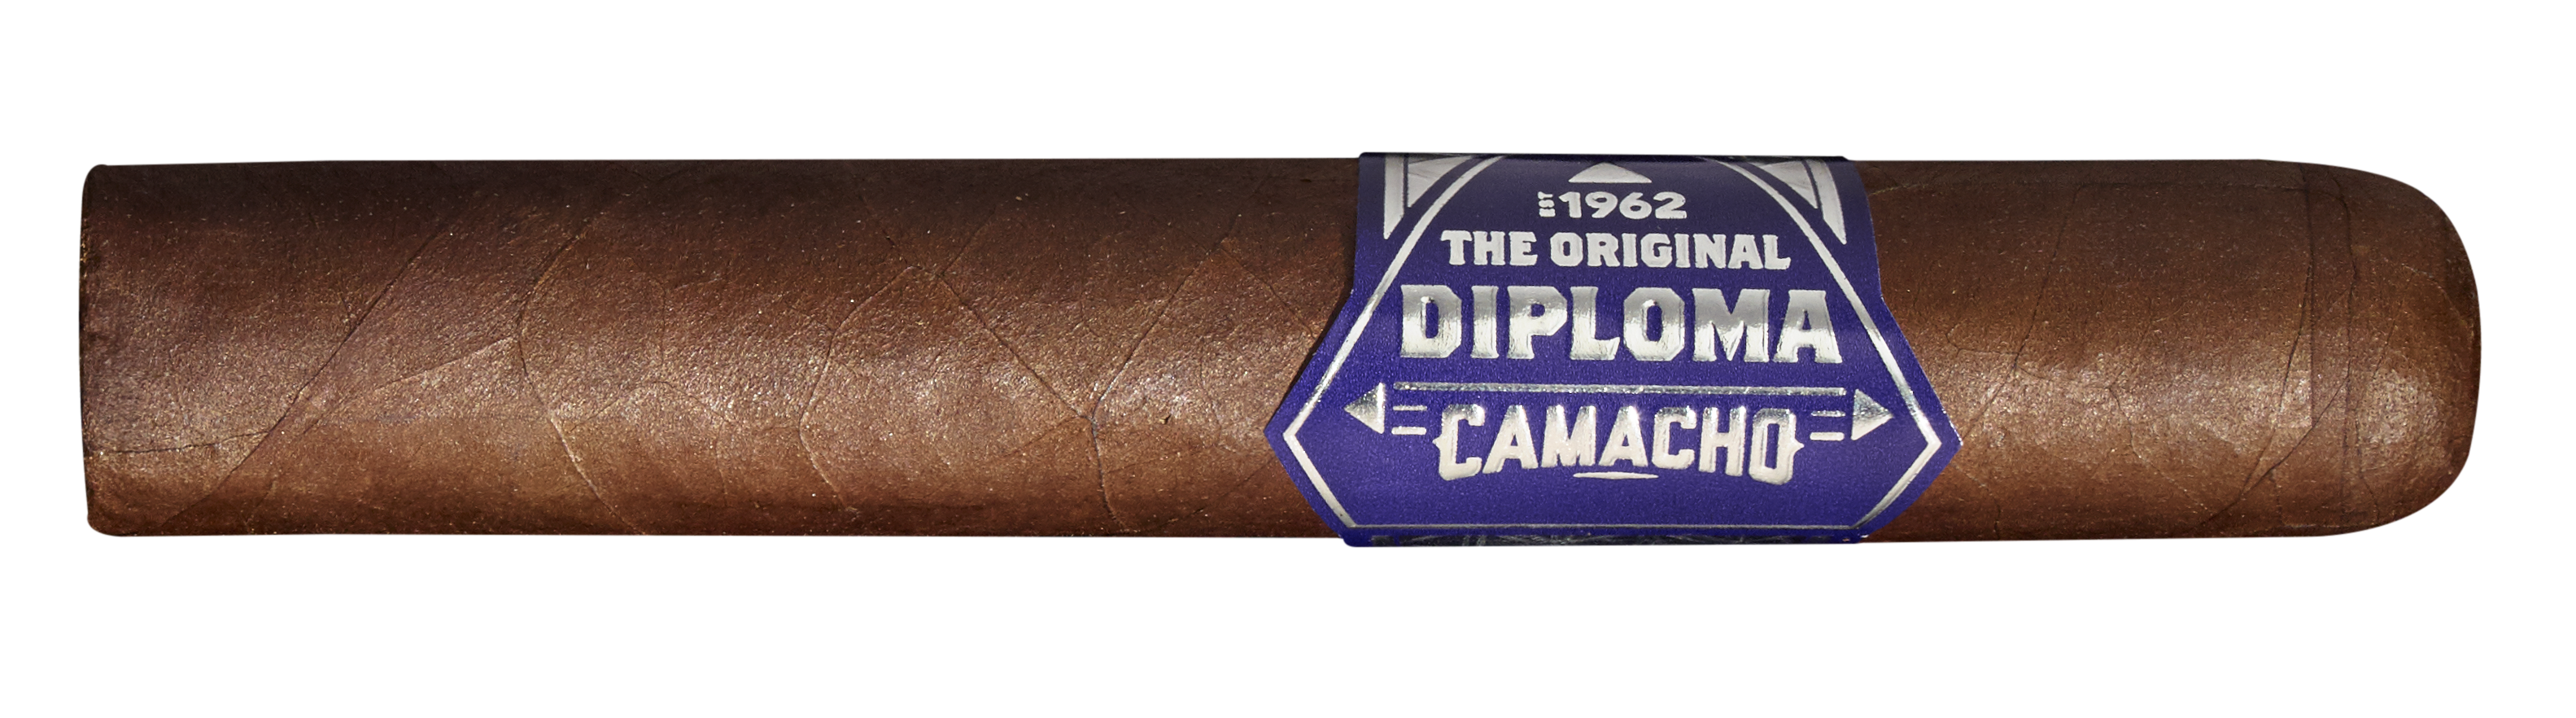 Camacho Diploma Single